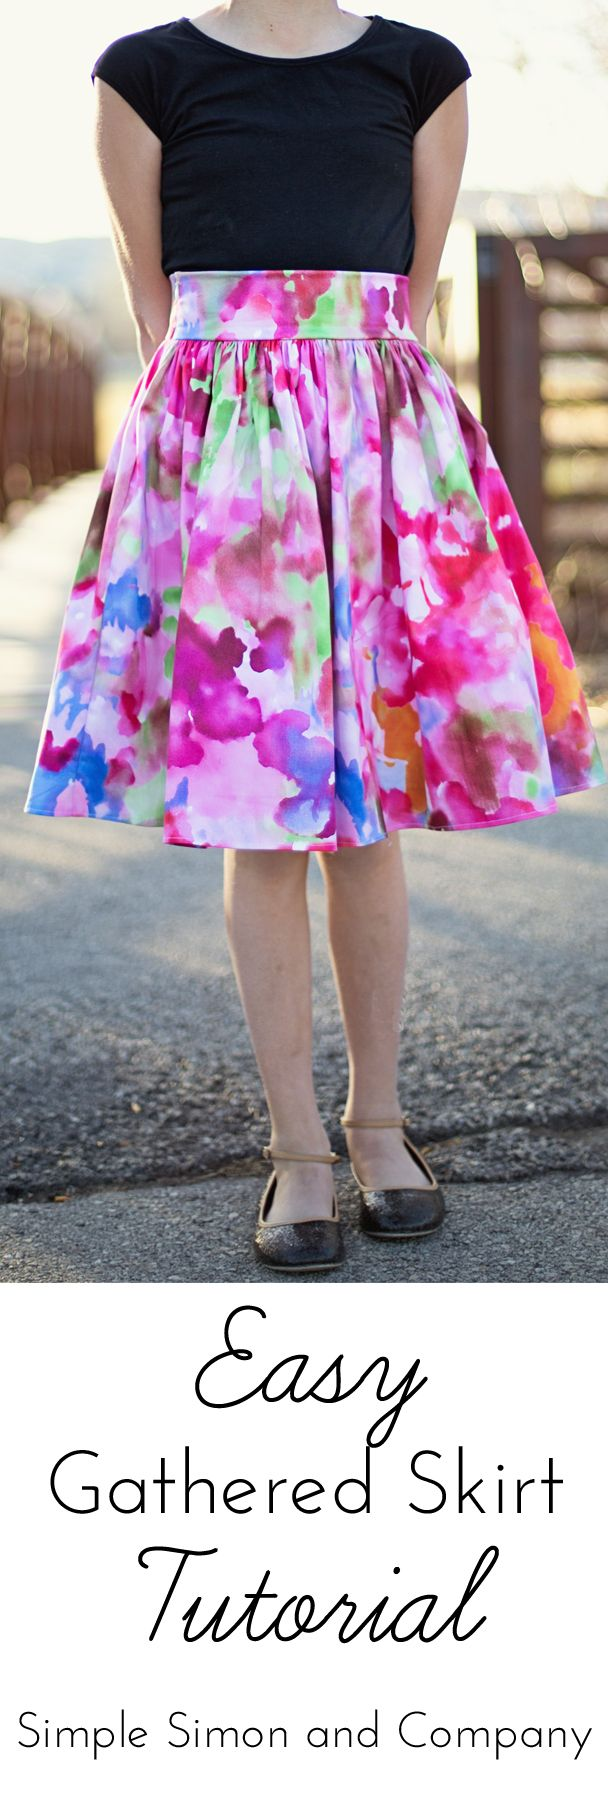 A Spring Skirt-and a tutorial on an easy gathered skirt! - Simple Simon and Company